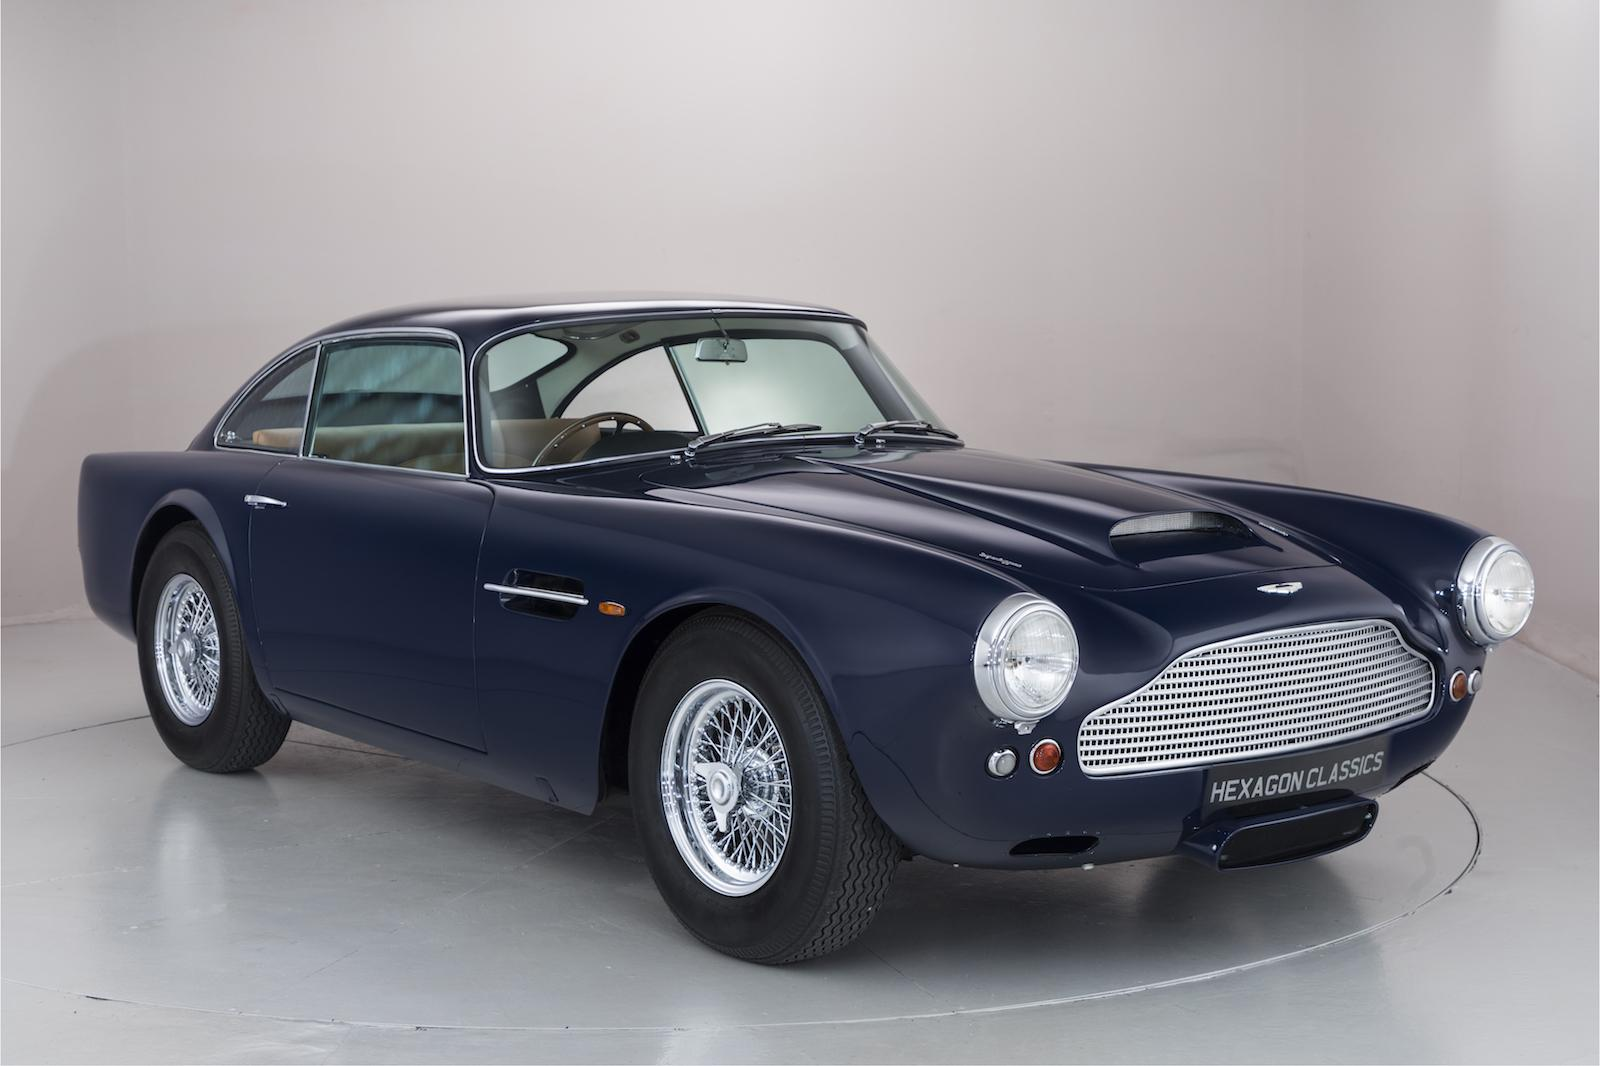 Rare pre-production Aston DB4 goes on sale in London